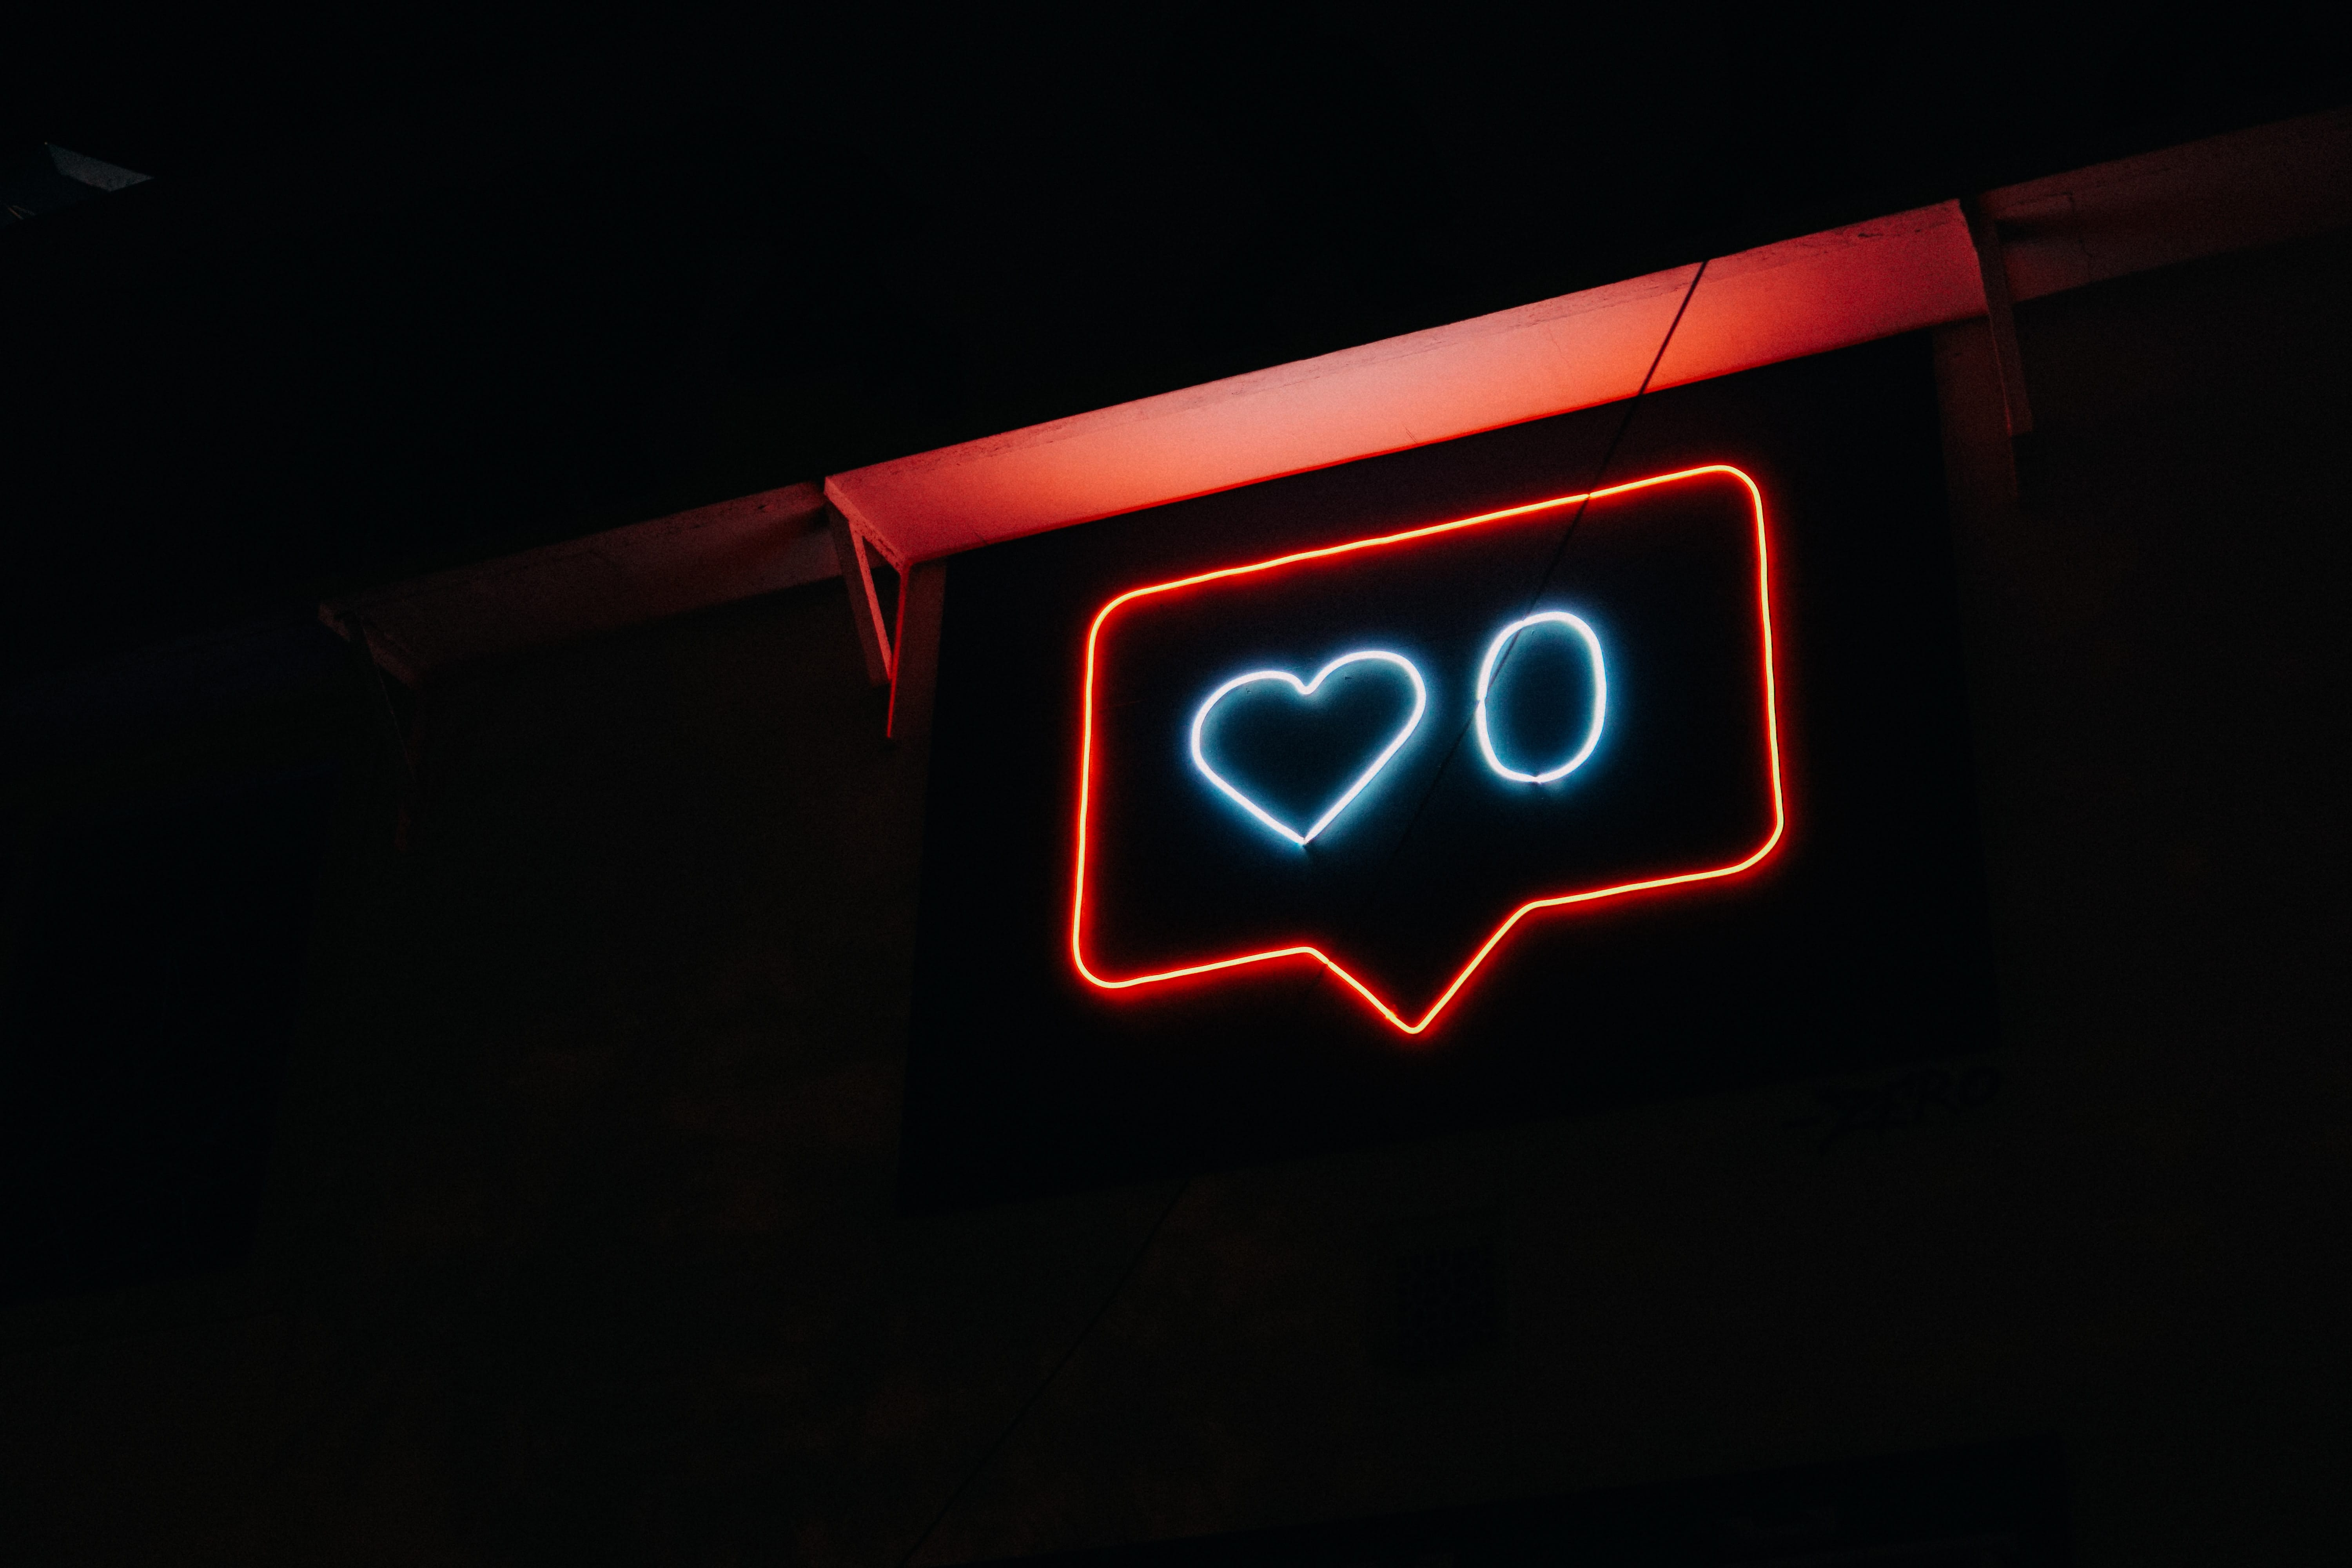 Red and blue neon sign showing a comment bubble and zero likes against a black background; image by Prateek Katyal, via Unsplash.com.